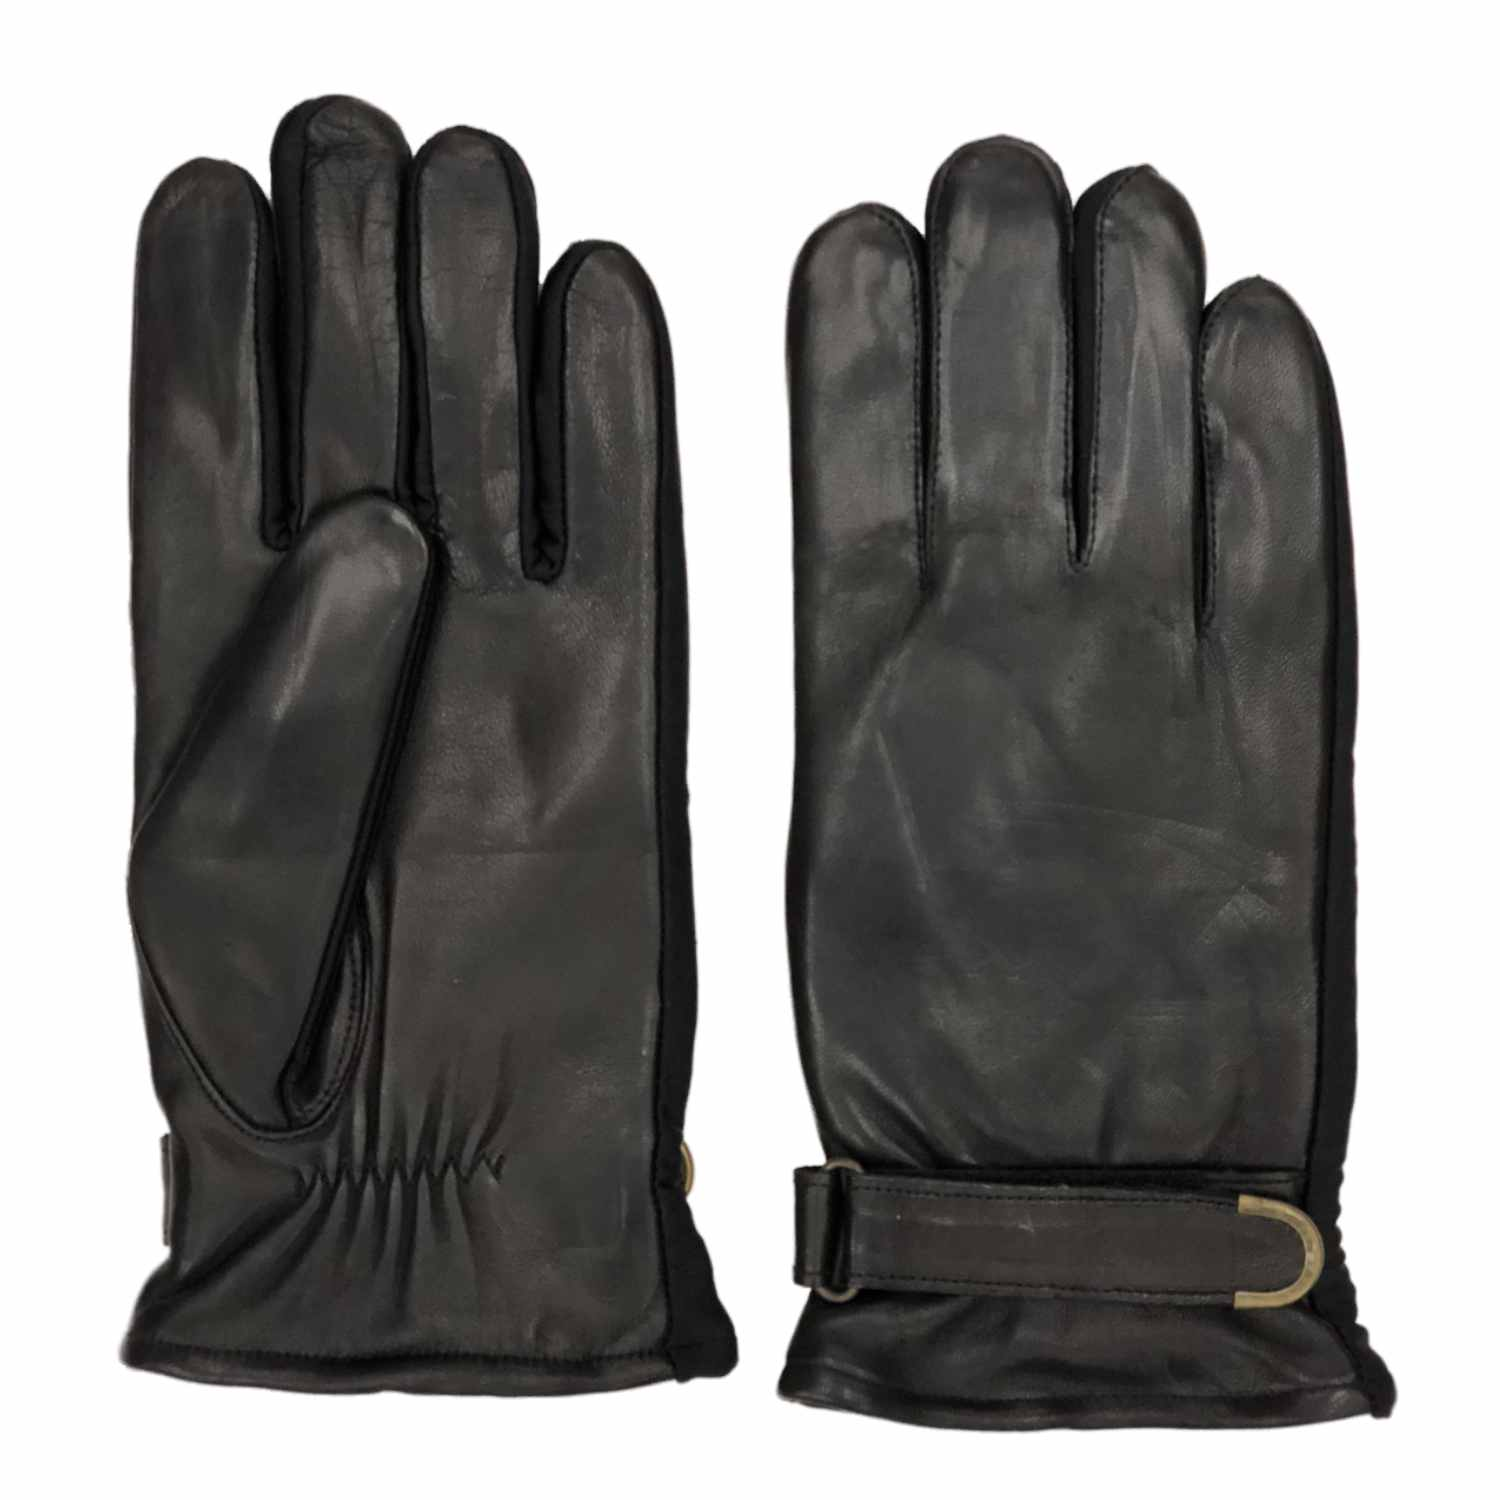 Isotoner Mens Sleek Black Leather Buckle Gloves with Ultra Plush Lining